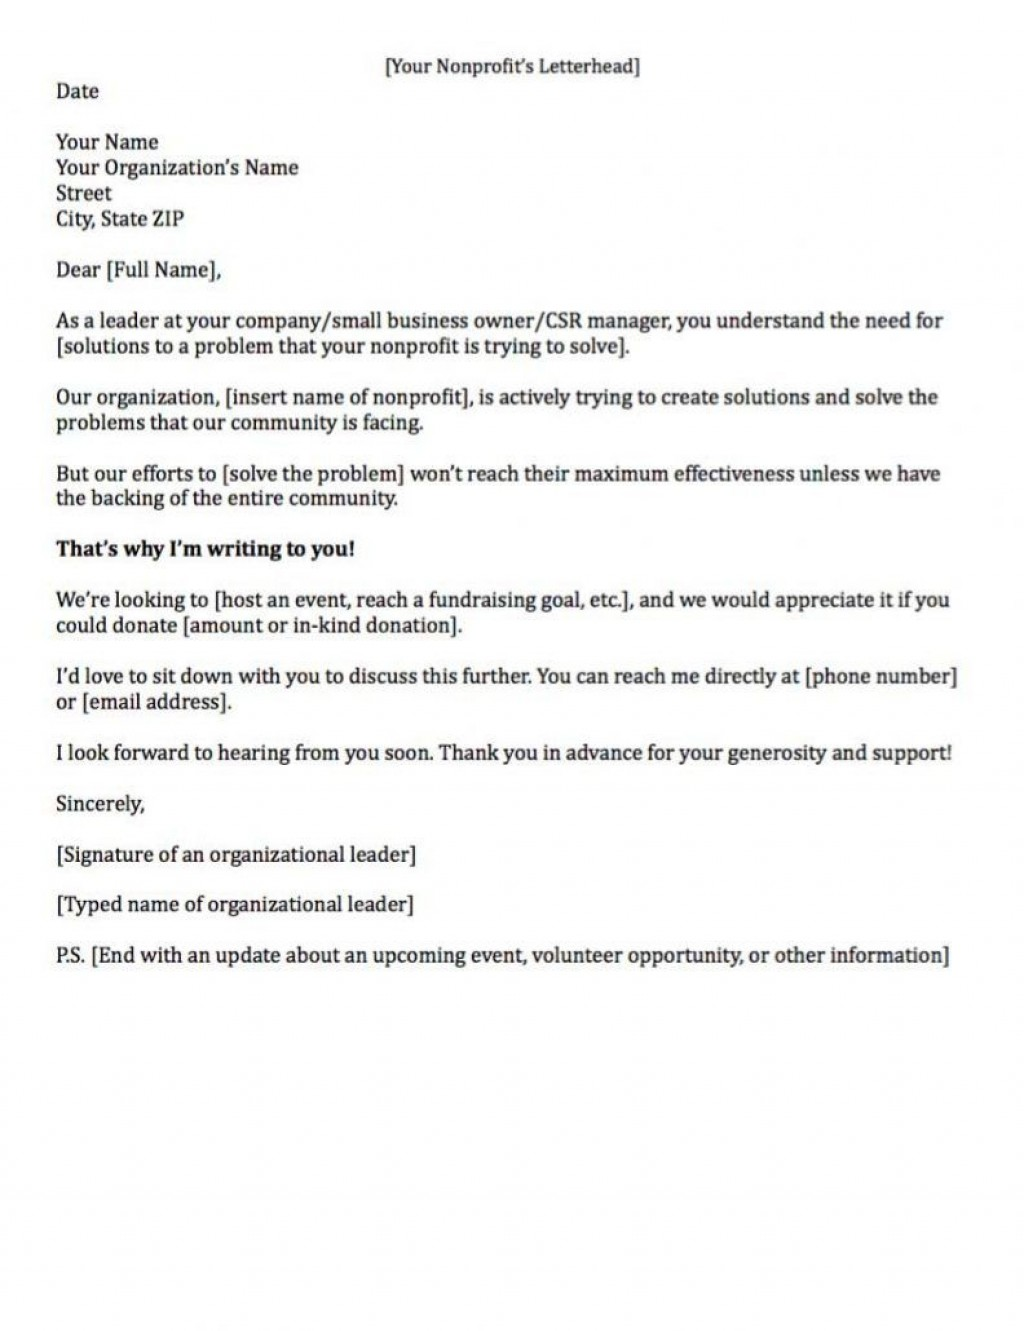 007 Remarkable Fund Raising Letter Template High Resolution  Templates Example Of Fundraising Appeal For Mission Trip UkLarge